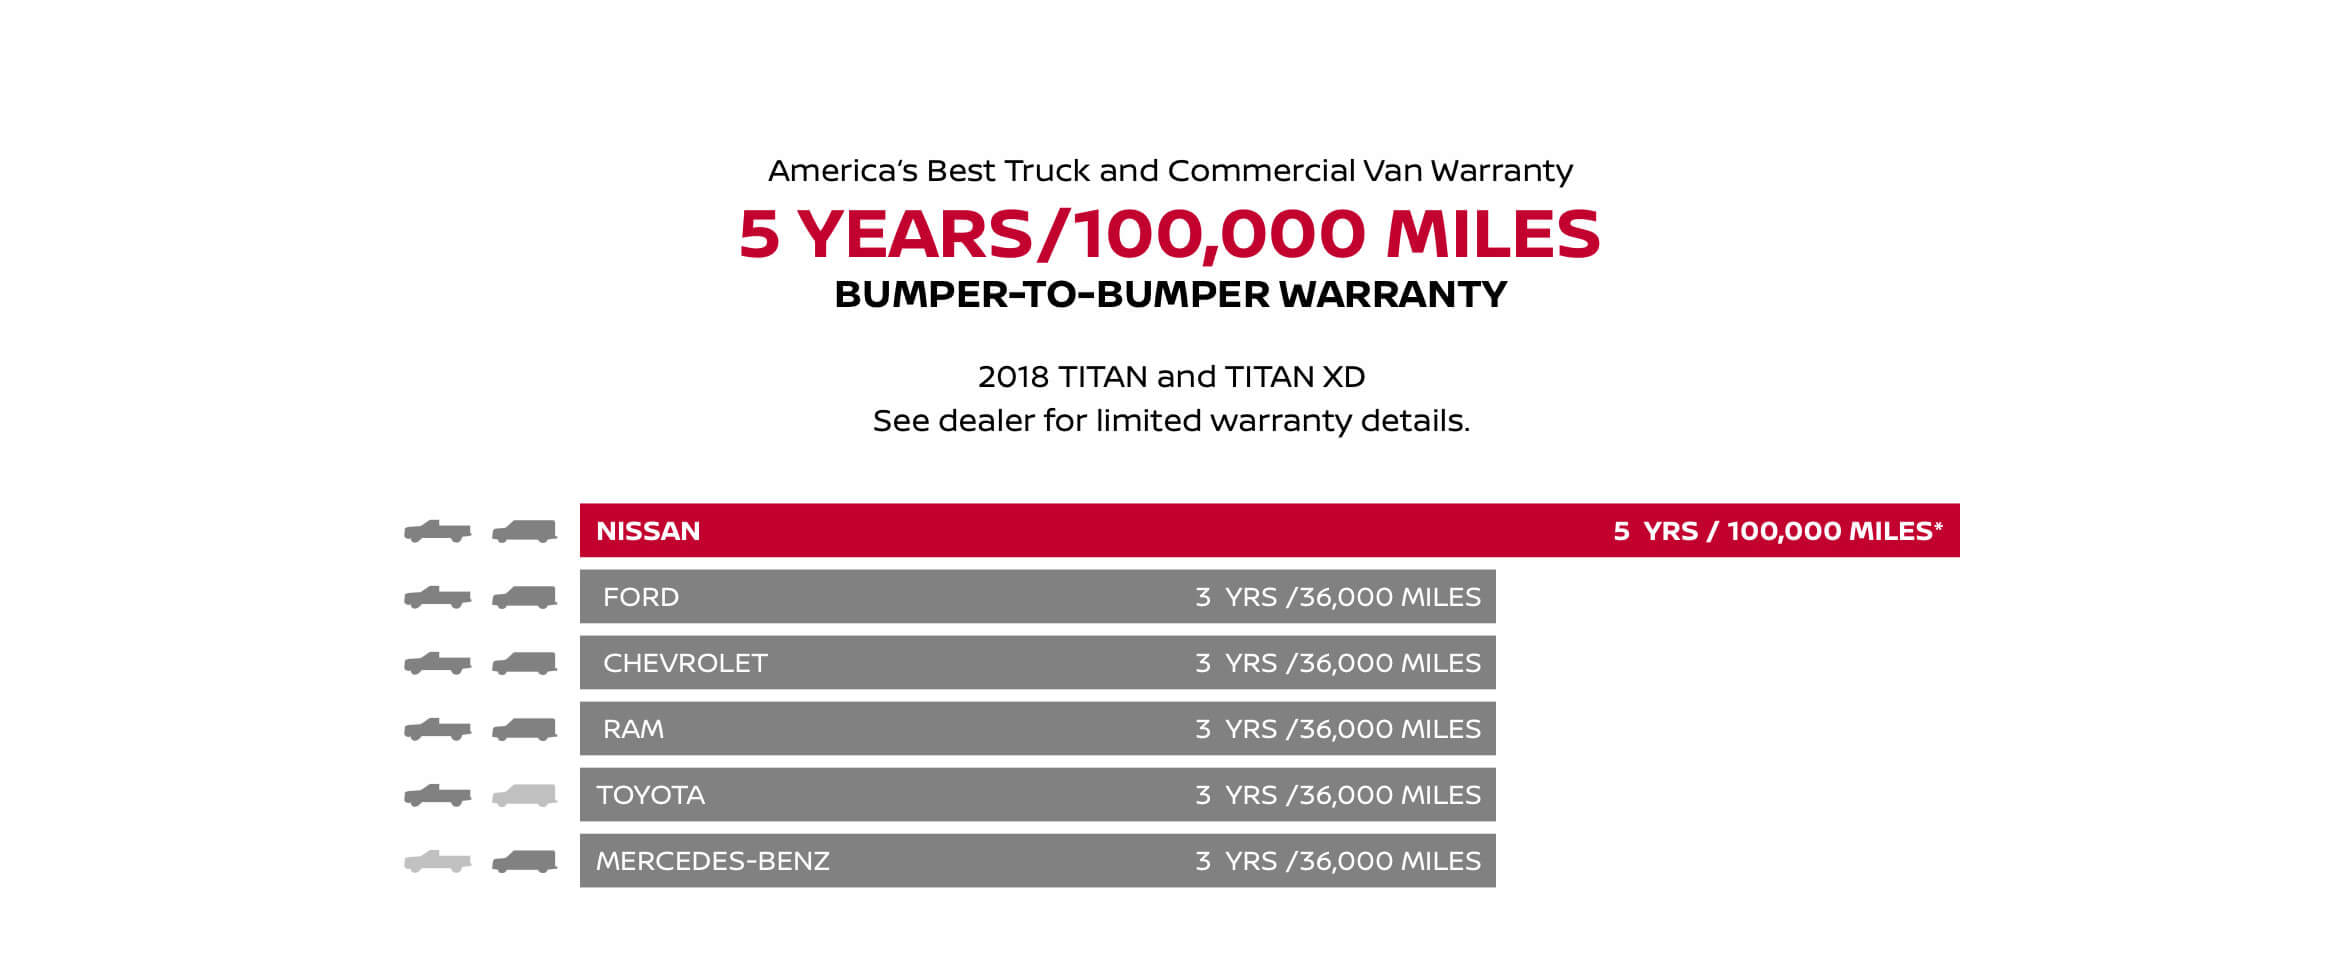 America's Best Truck and Commercial Van Warranty 5 YEARS/100,00 MILES